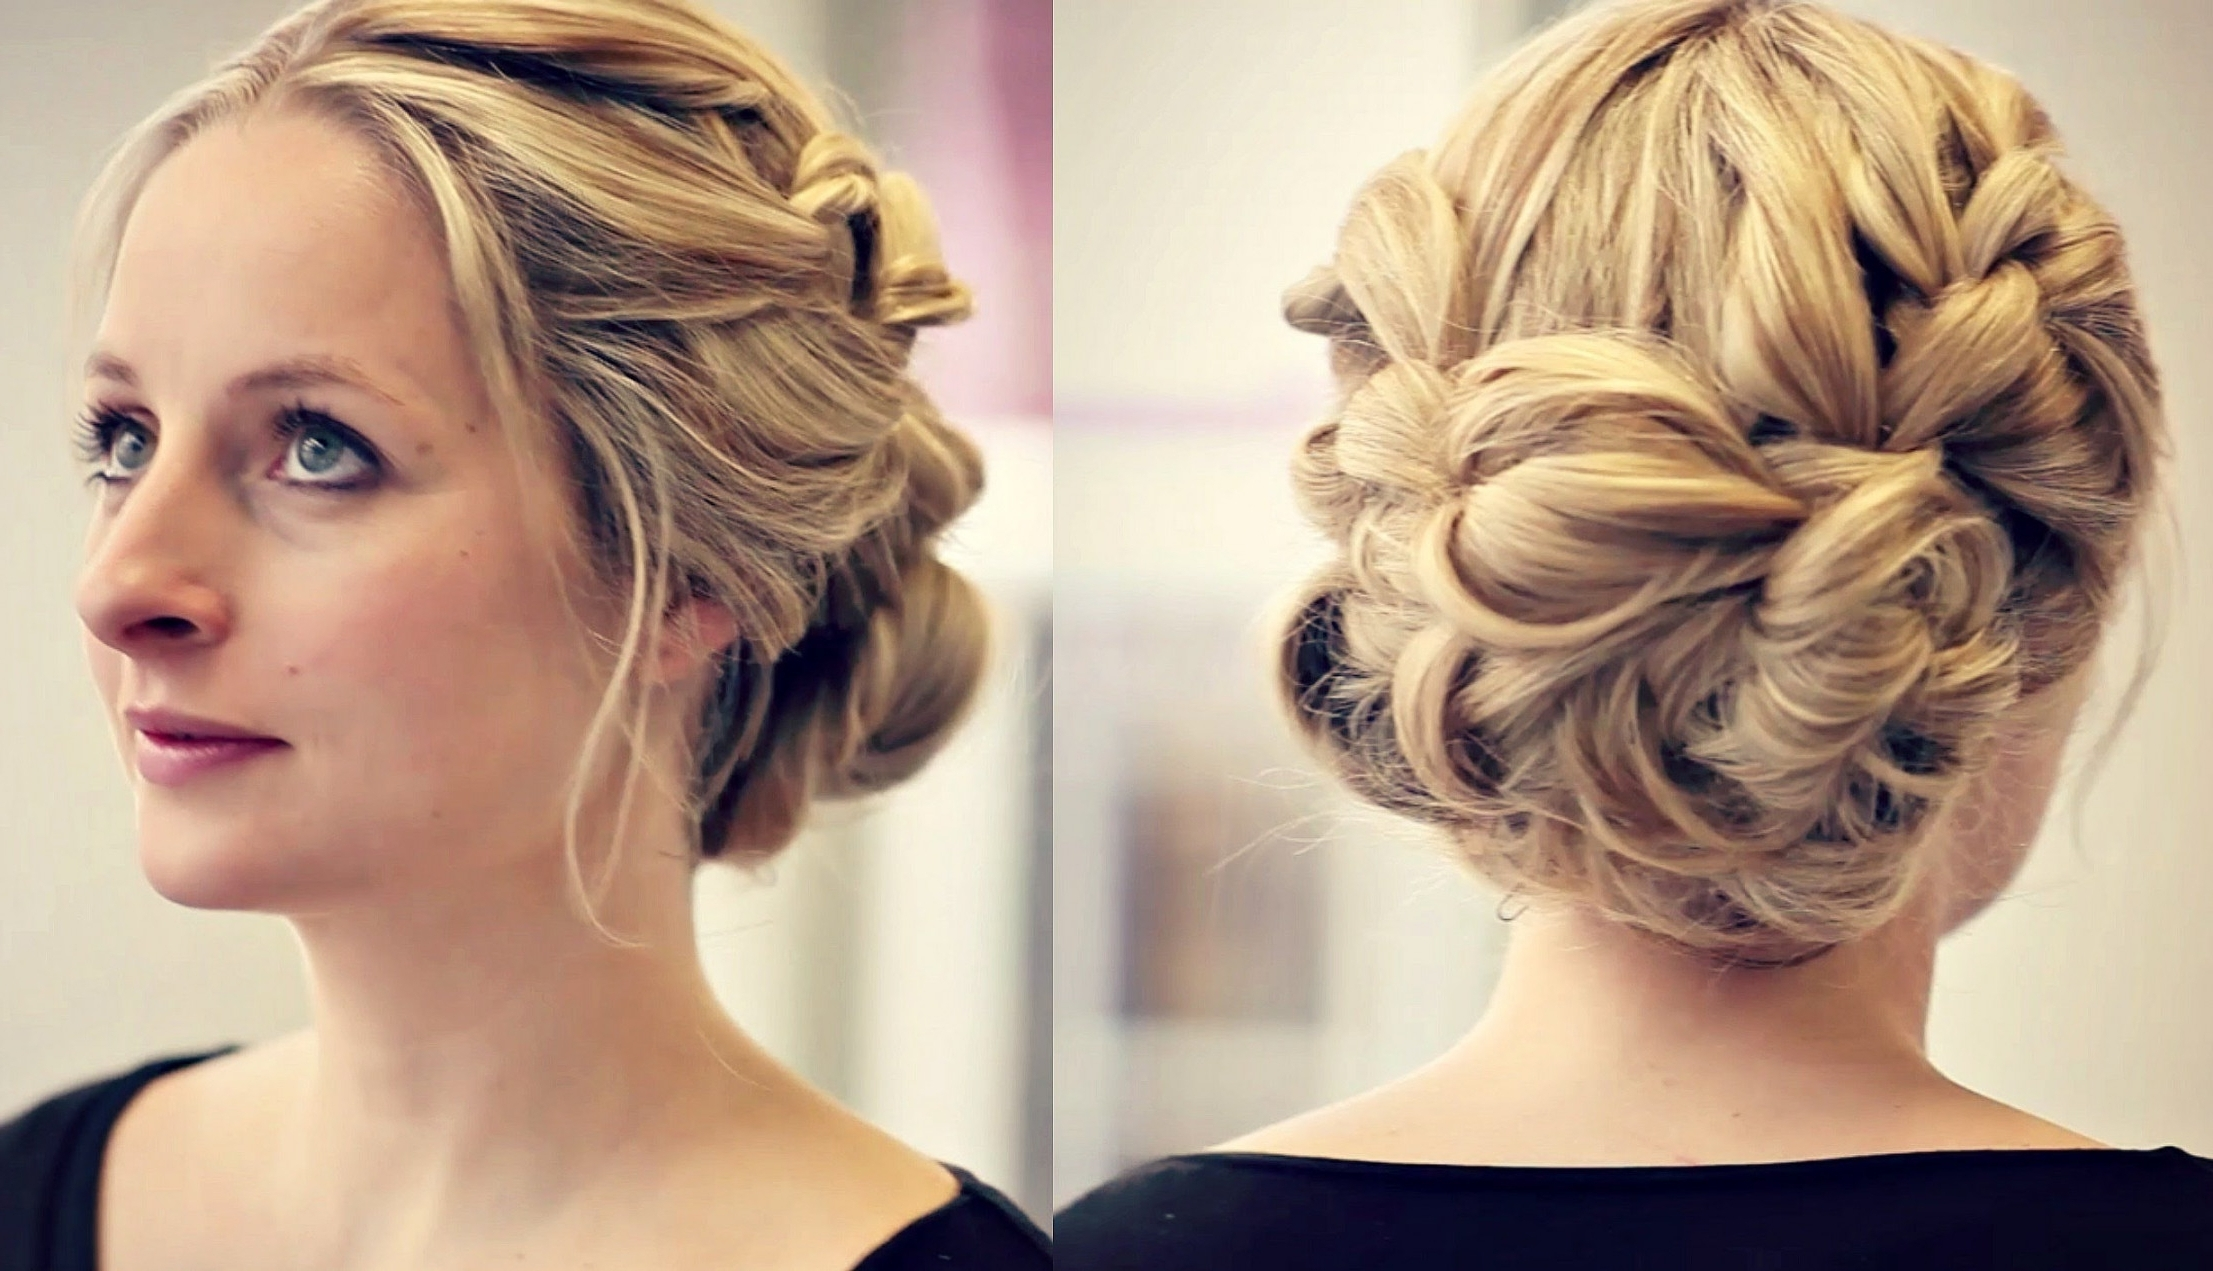 Hairstyles Bridesmaid Bridesmaid Hair Tutorial The Perfect Updo With Regard To Hairstyles For Bridesmaids Updos (View 9 of 15)